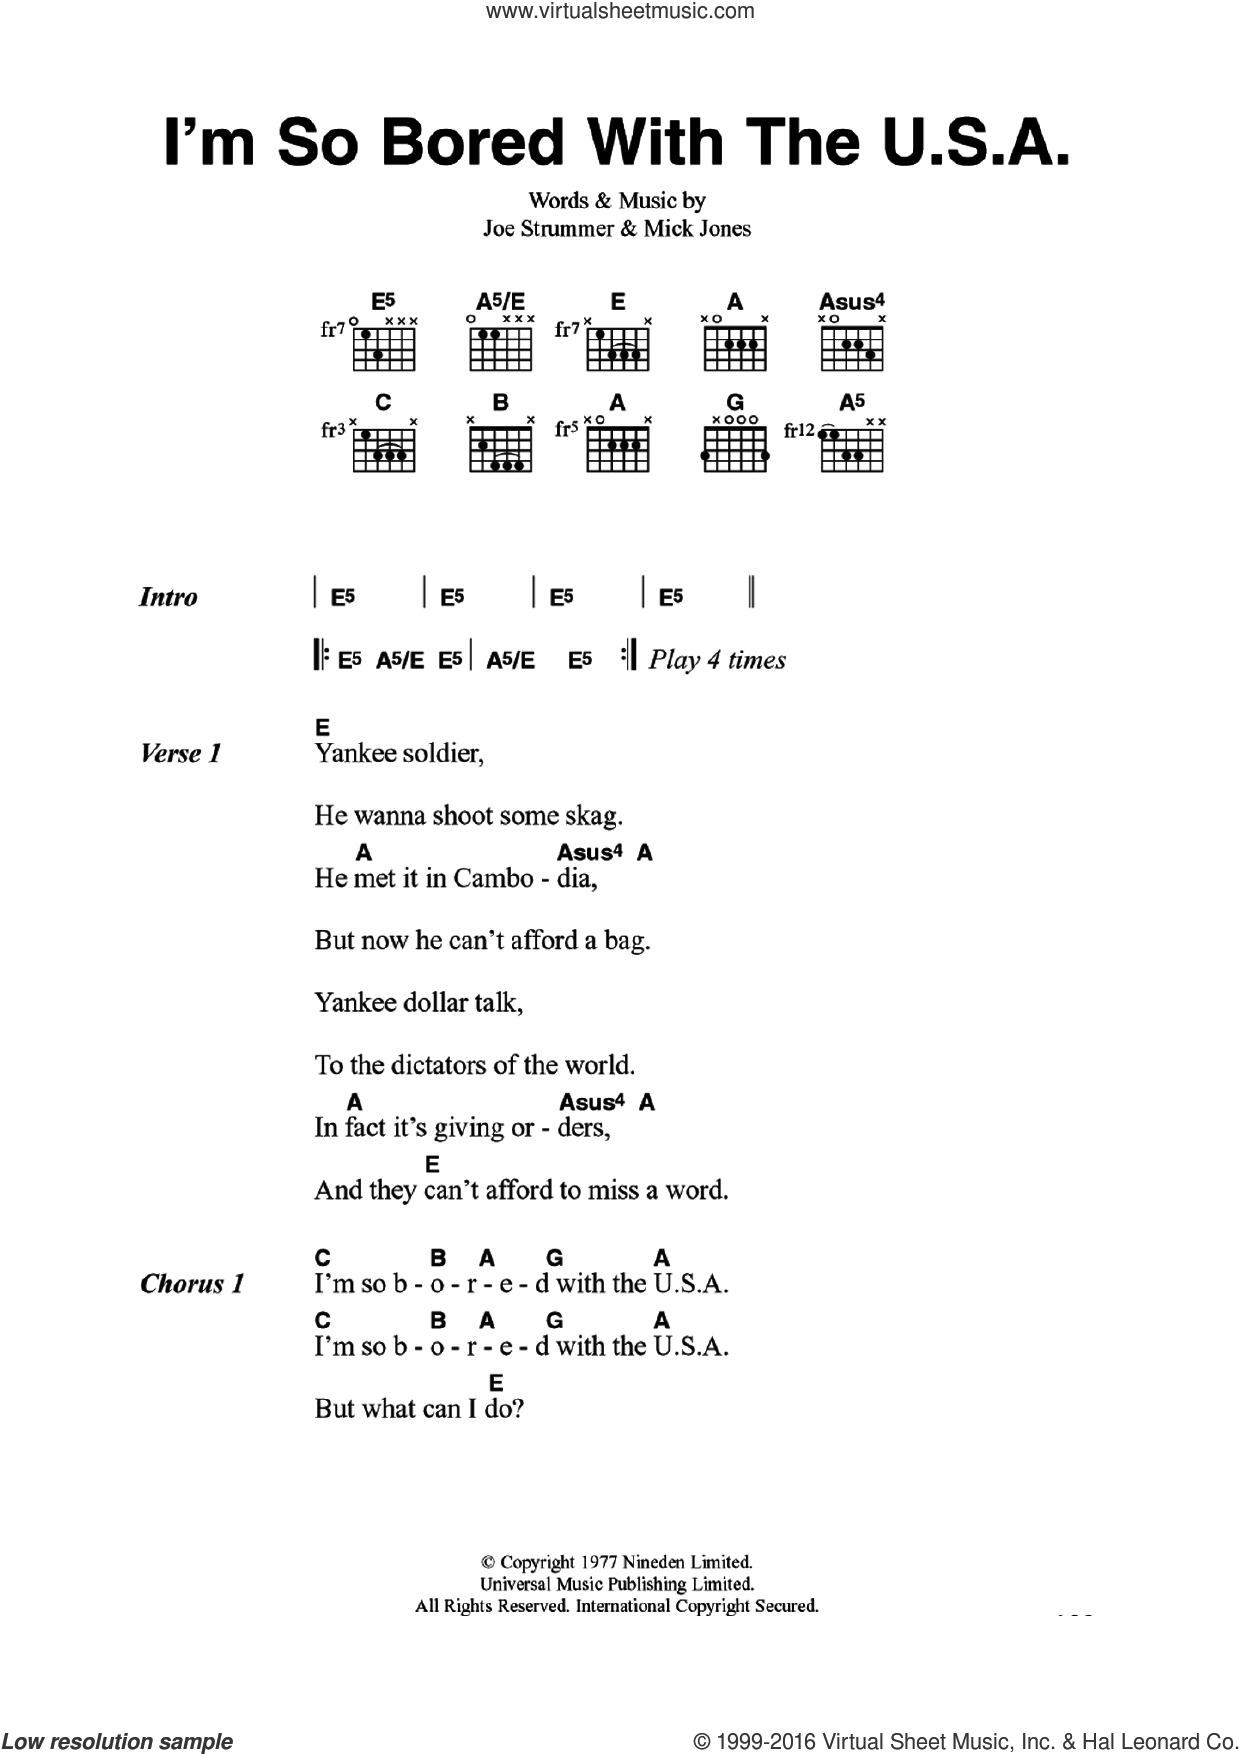 I'm So Bored With The U.S.A. sheet music for guitar (chords) by The Clash, Joe Strummer and Mick Jones, intermediate. Score Image Preview.